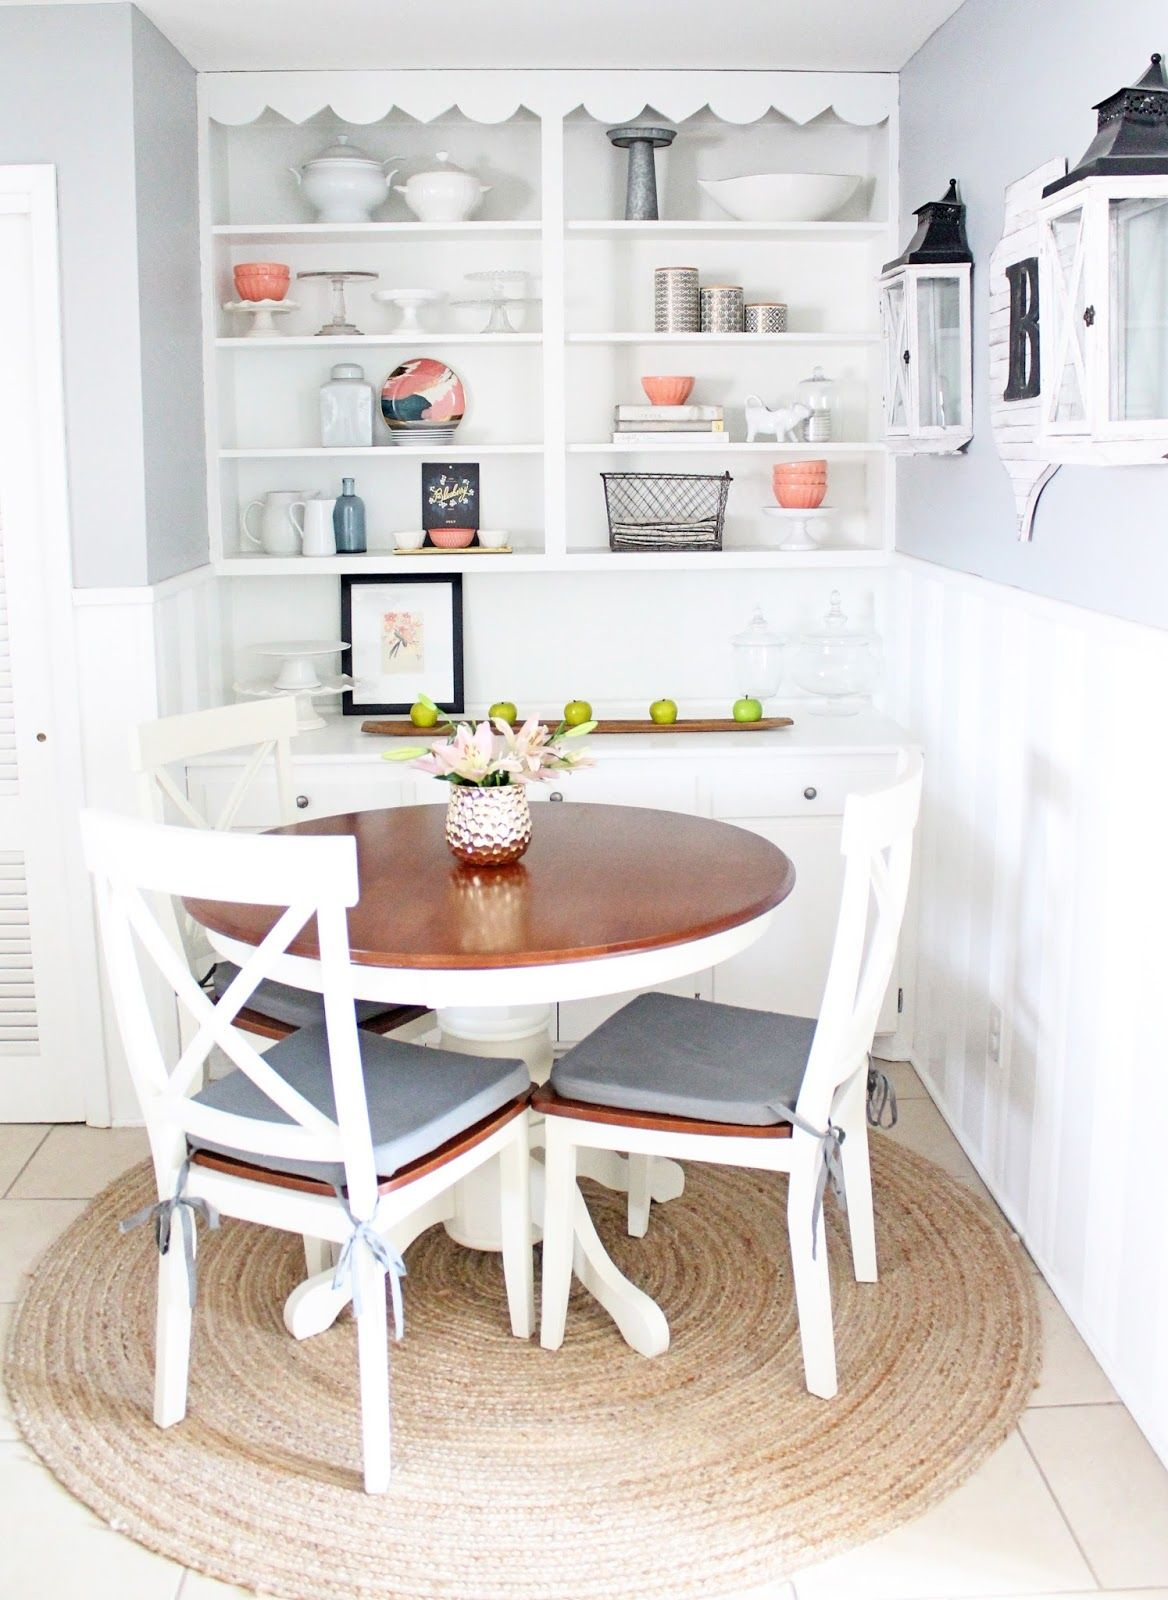 A modern farmhouse take on a breakfast nook with built-ins. Pops of peach